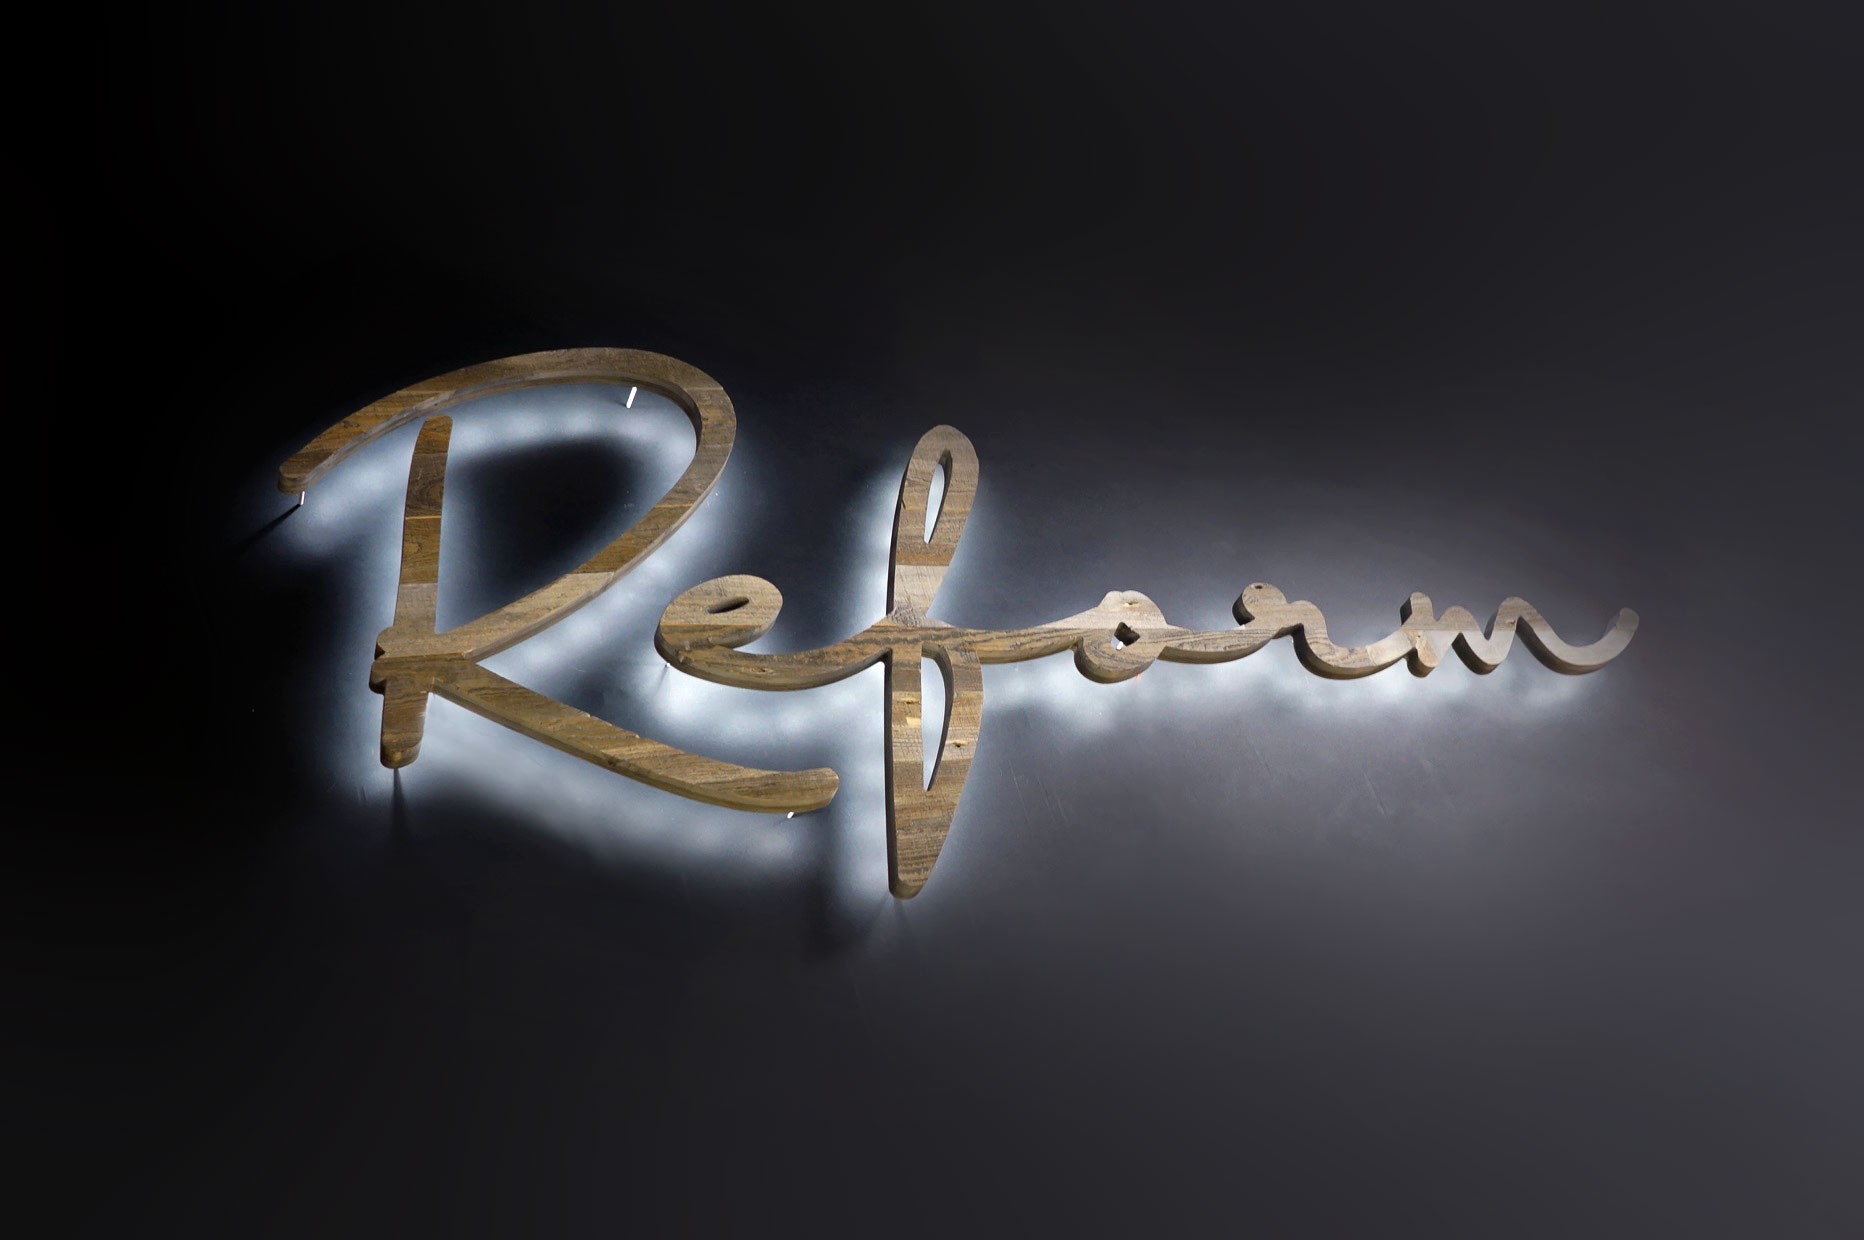 Reclaimed wood illuminated script sign for Reform, a fitness studio at Newtown Athletic Club, a premiere family fitness and wellness center serving residents of Newtown, PA